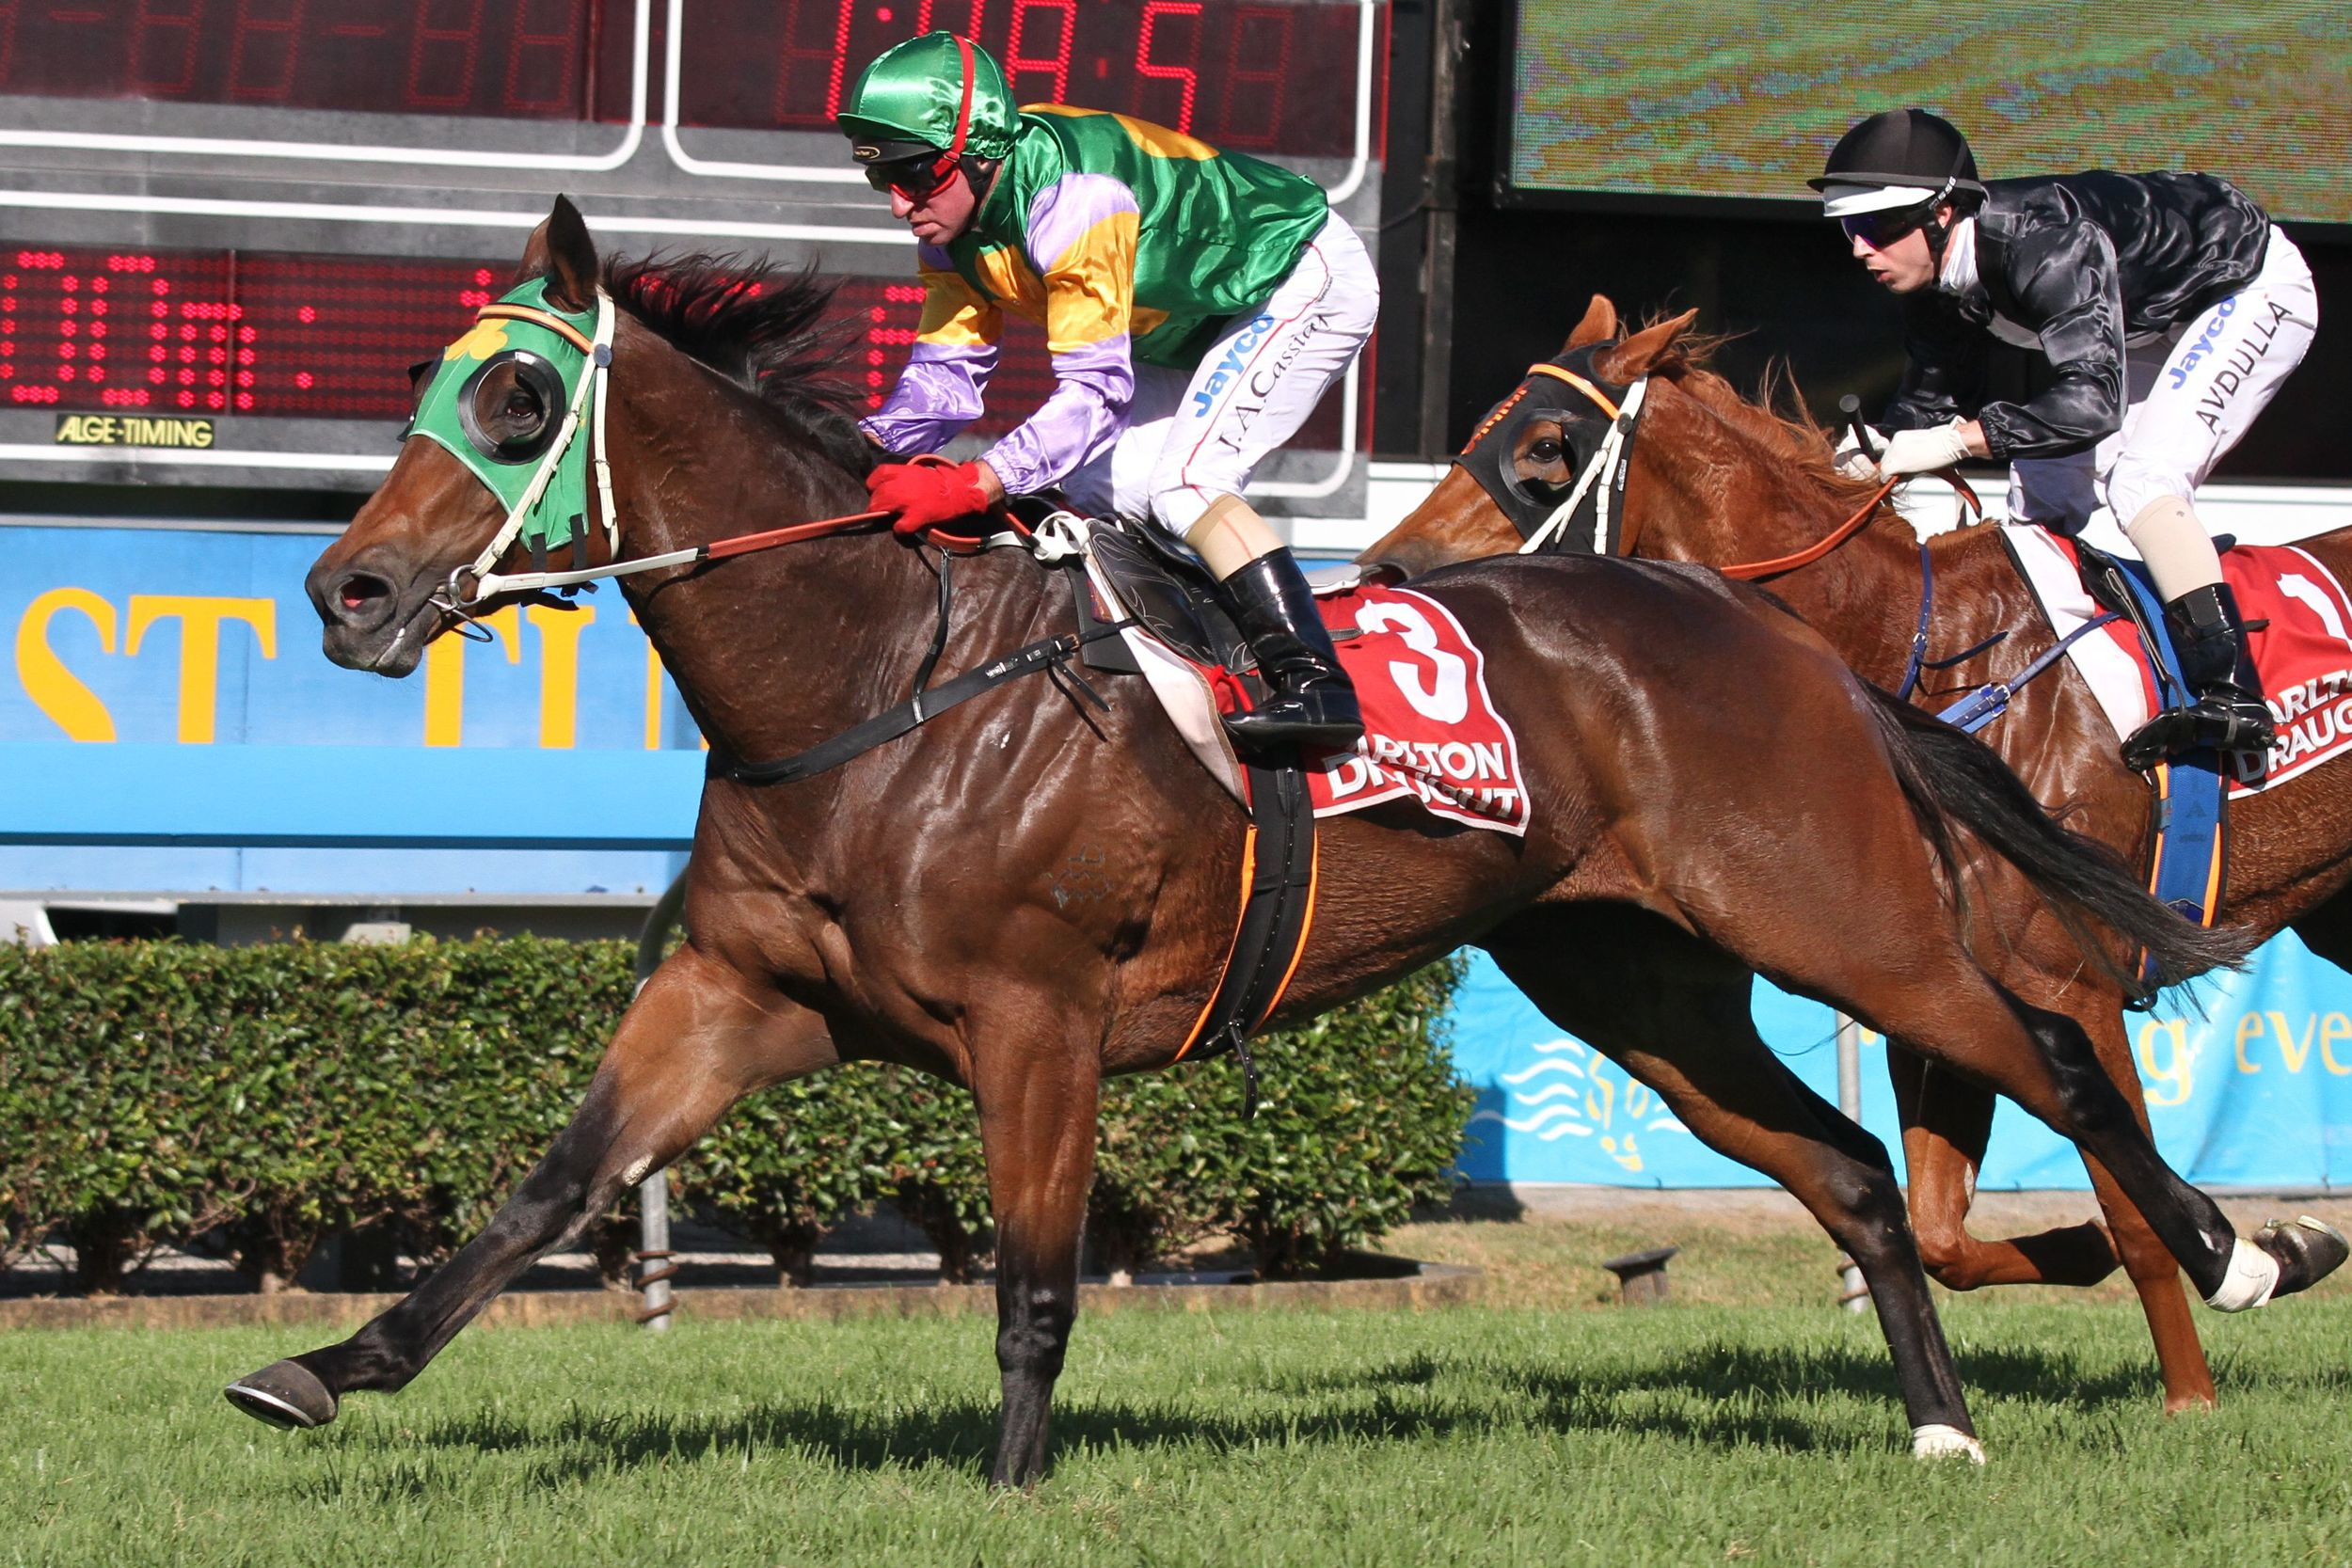 EXPRESS POWER - A $140,000 Magic Millions yearling purchase byBlue Sky Bloodstock As Agent - the well bred mare retires to stud a stakes winner by her sire Snitzel.